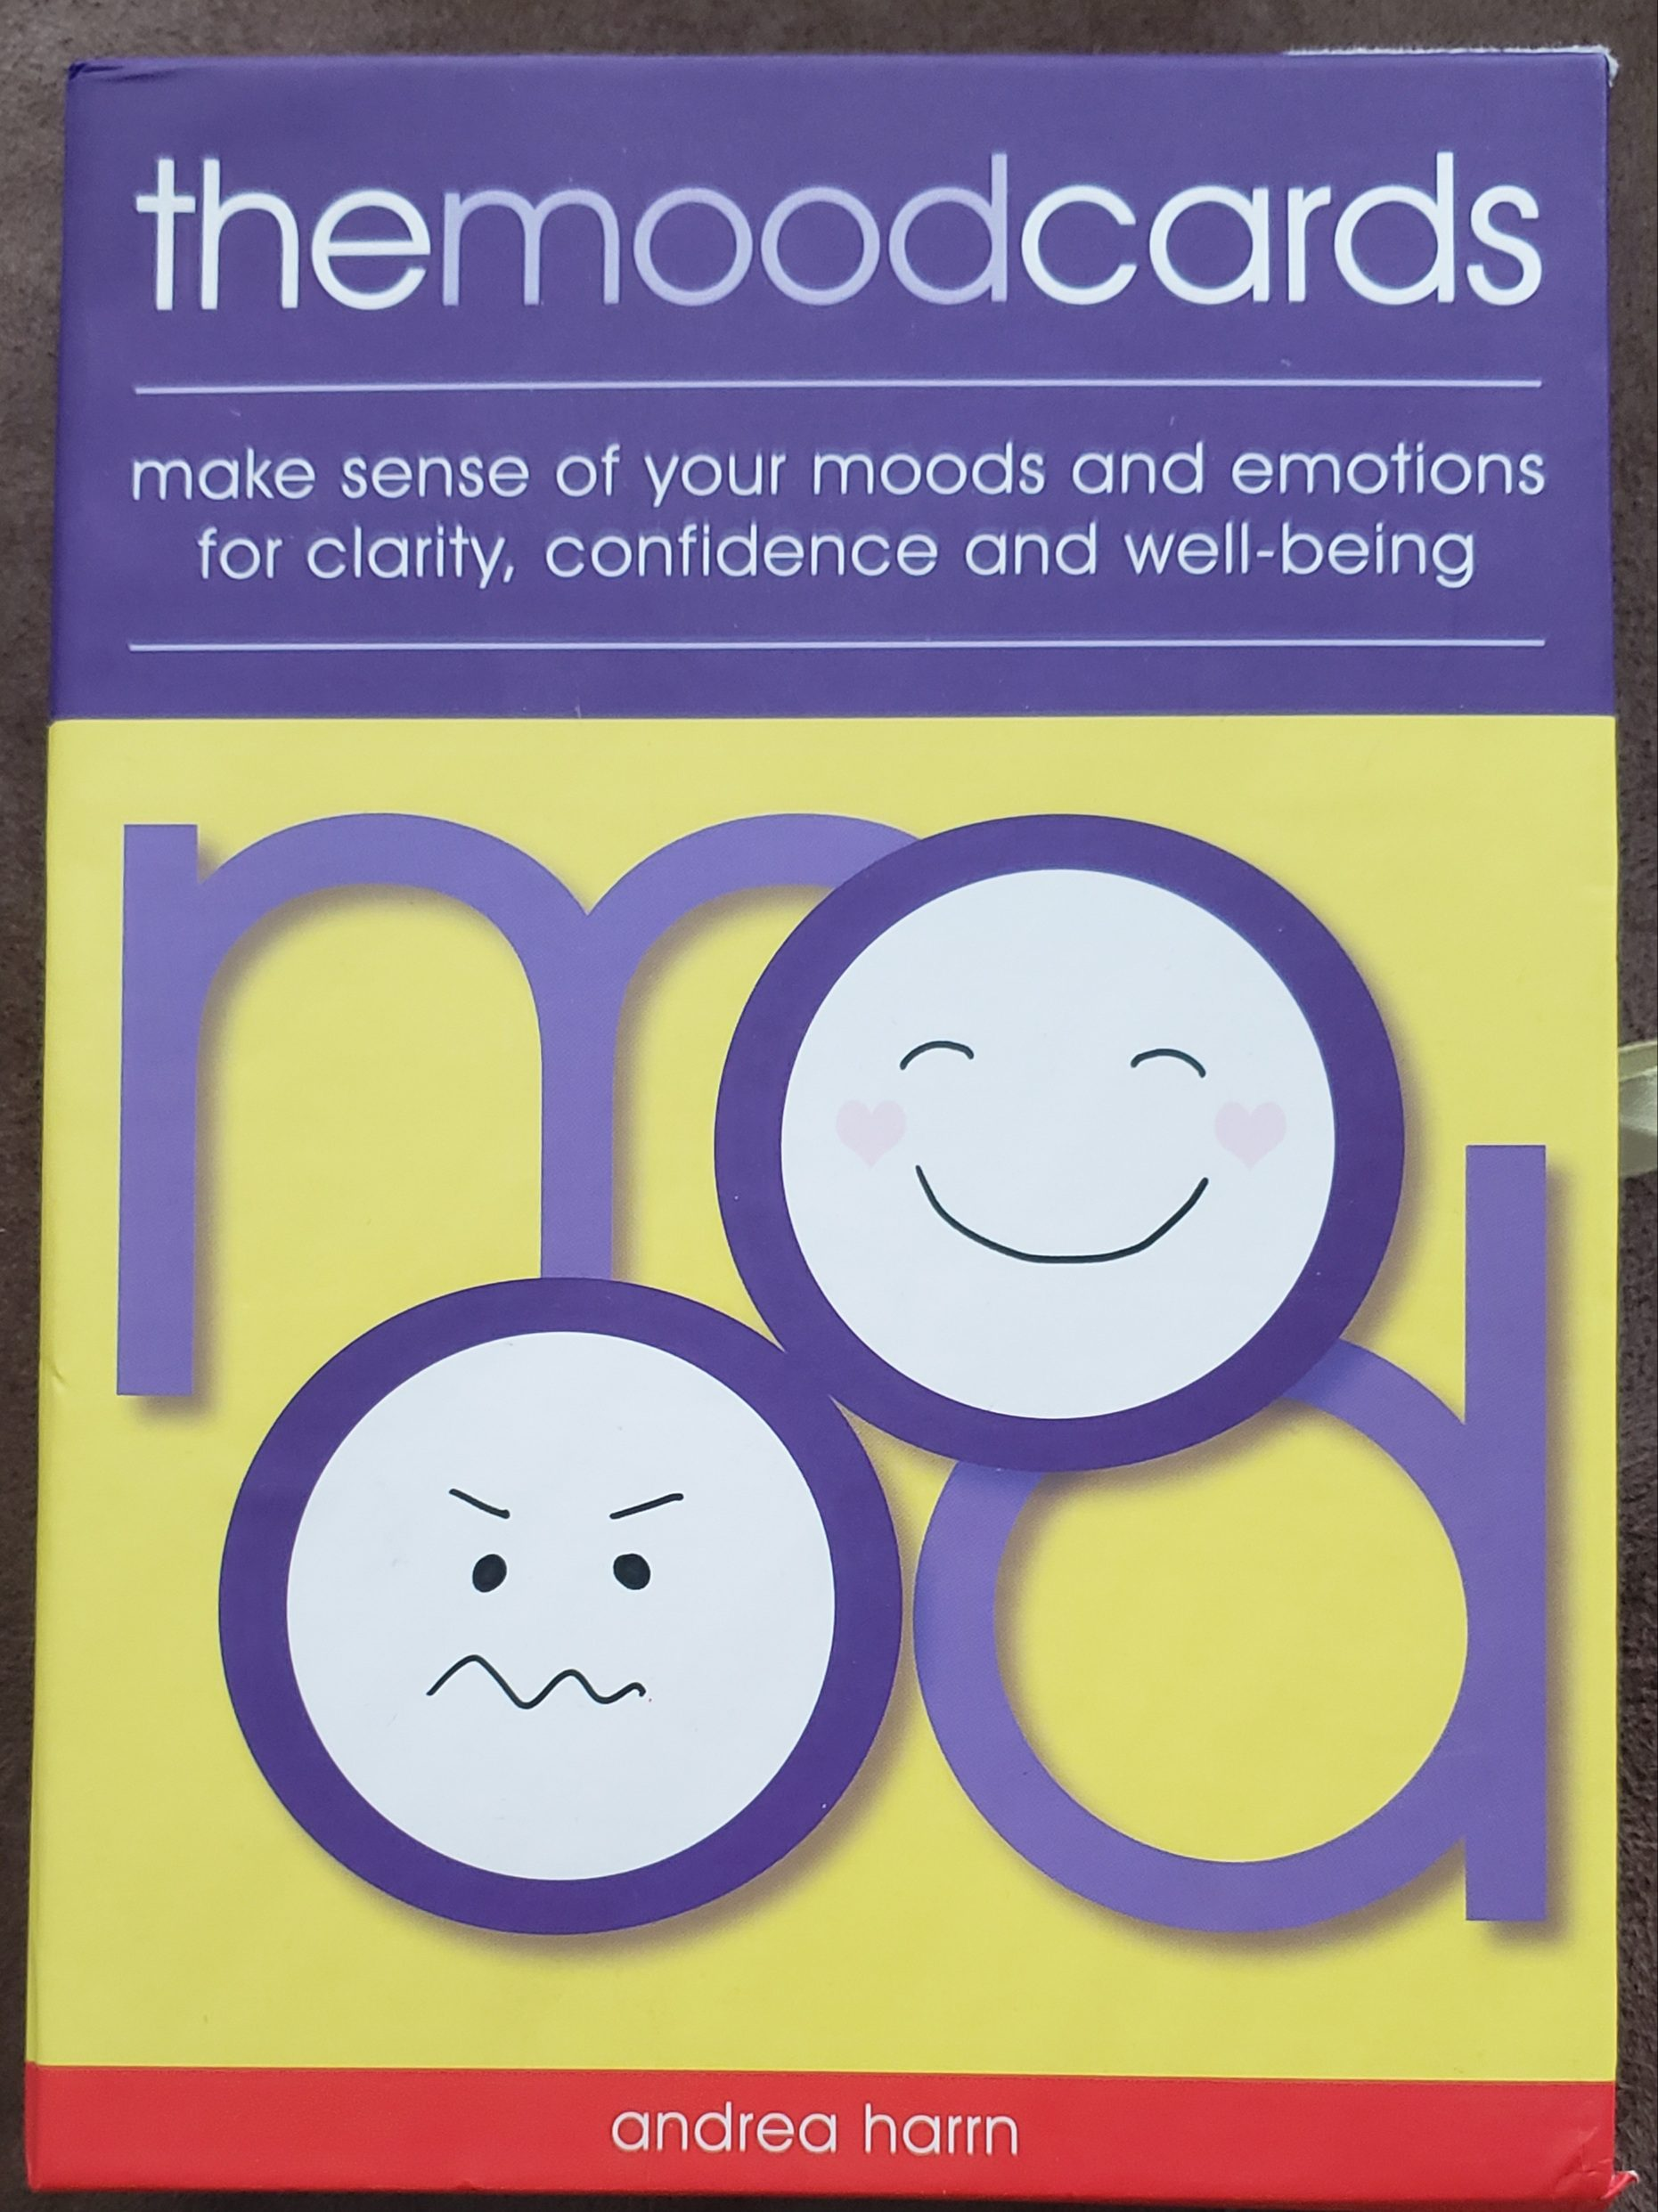 the mood cards by Andrea Harrn cover